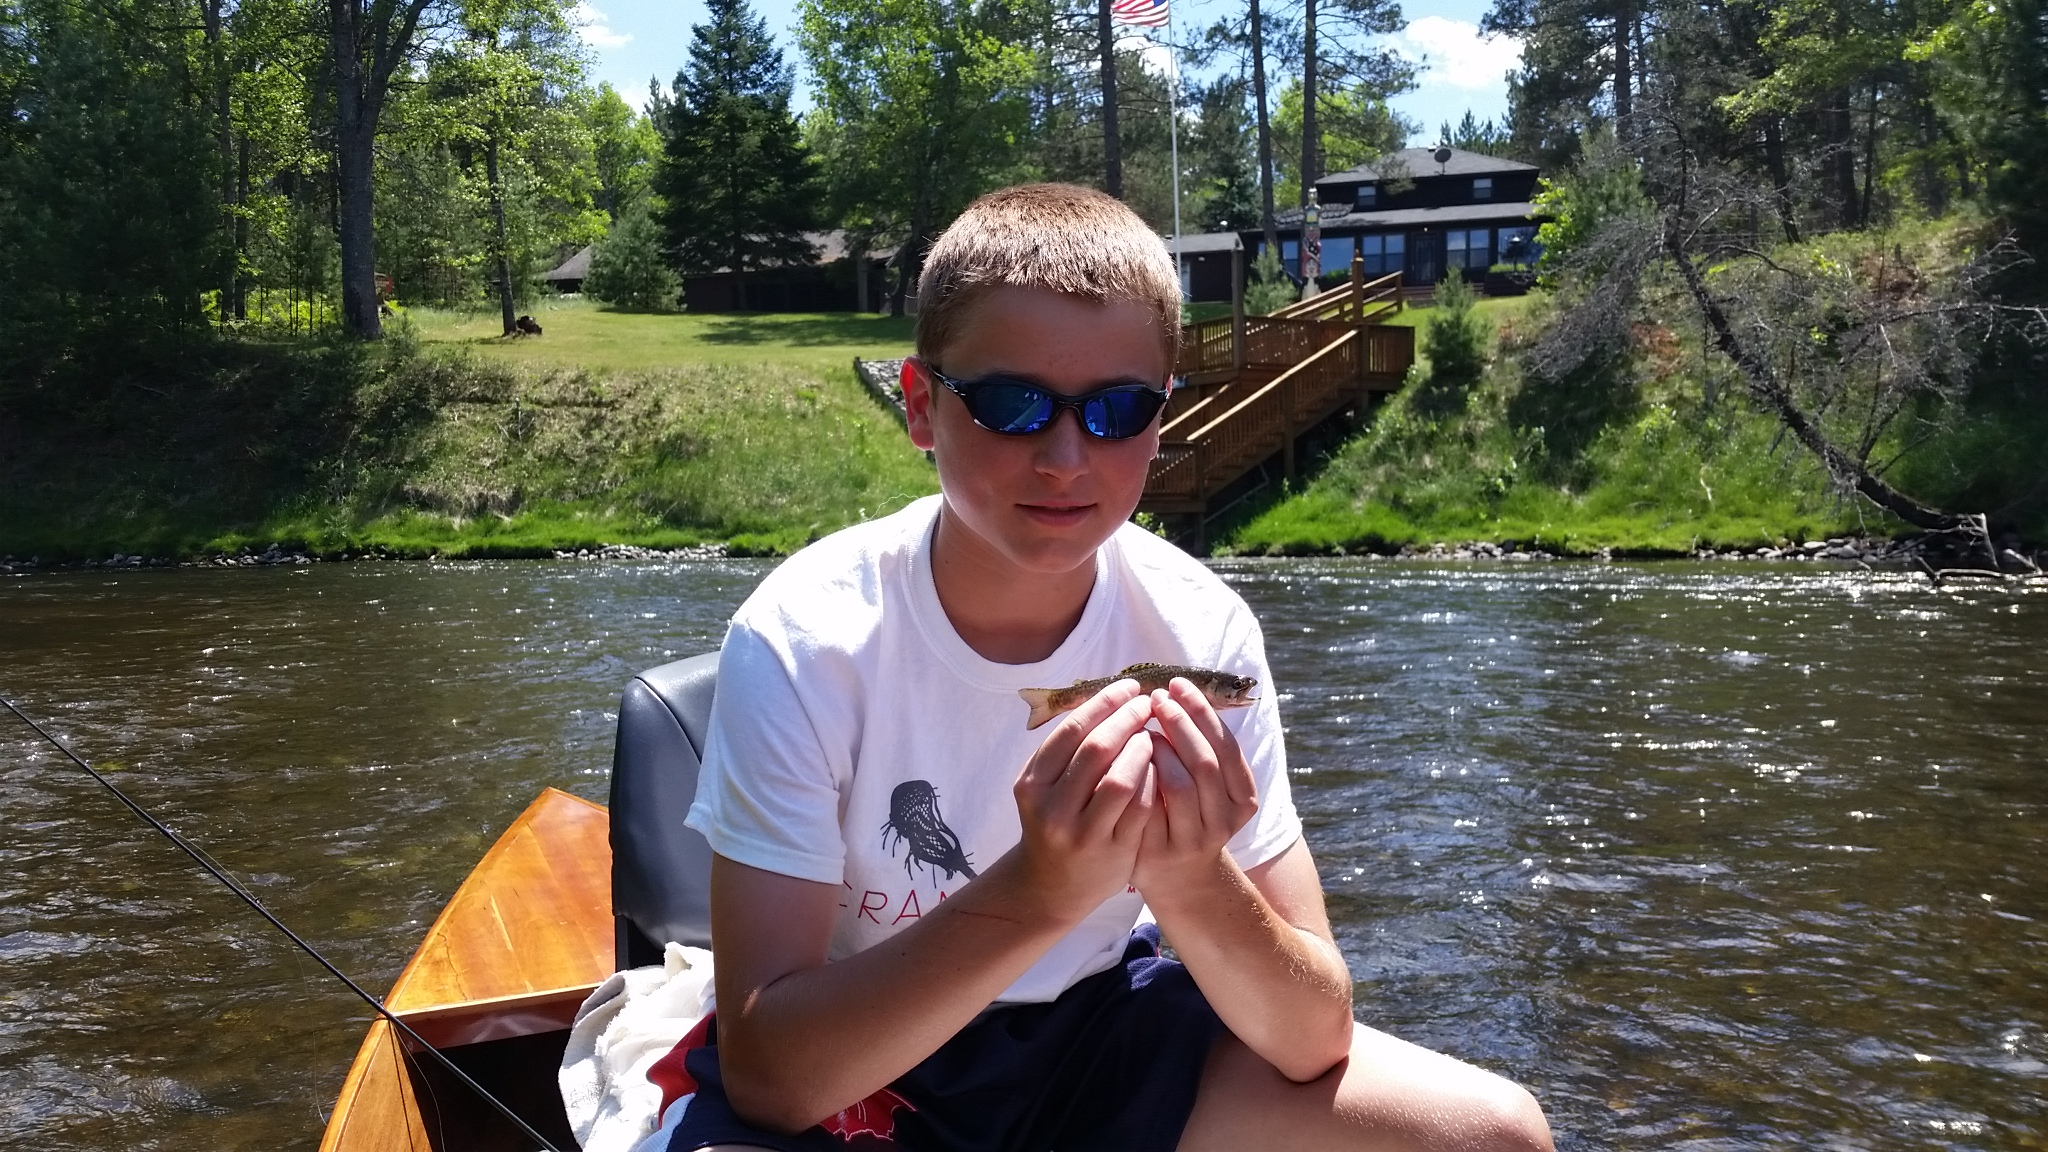 Charlie Thomson with his first trout ever! Caught while on a float with his father this past Saturday. Nice Brookie Charlie, way to go!